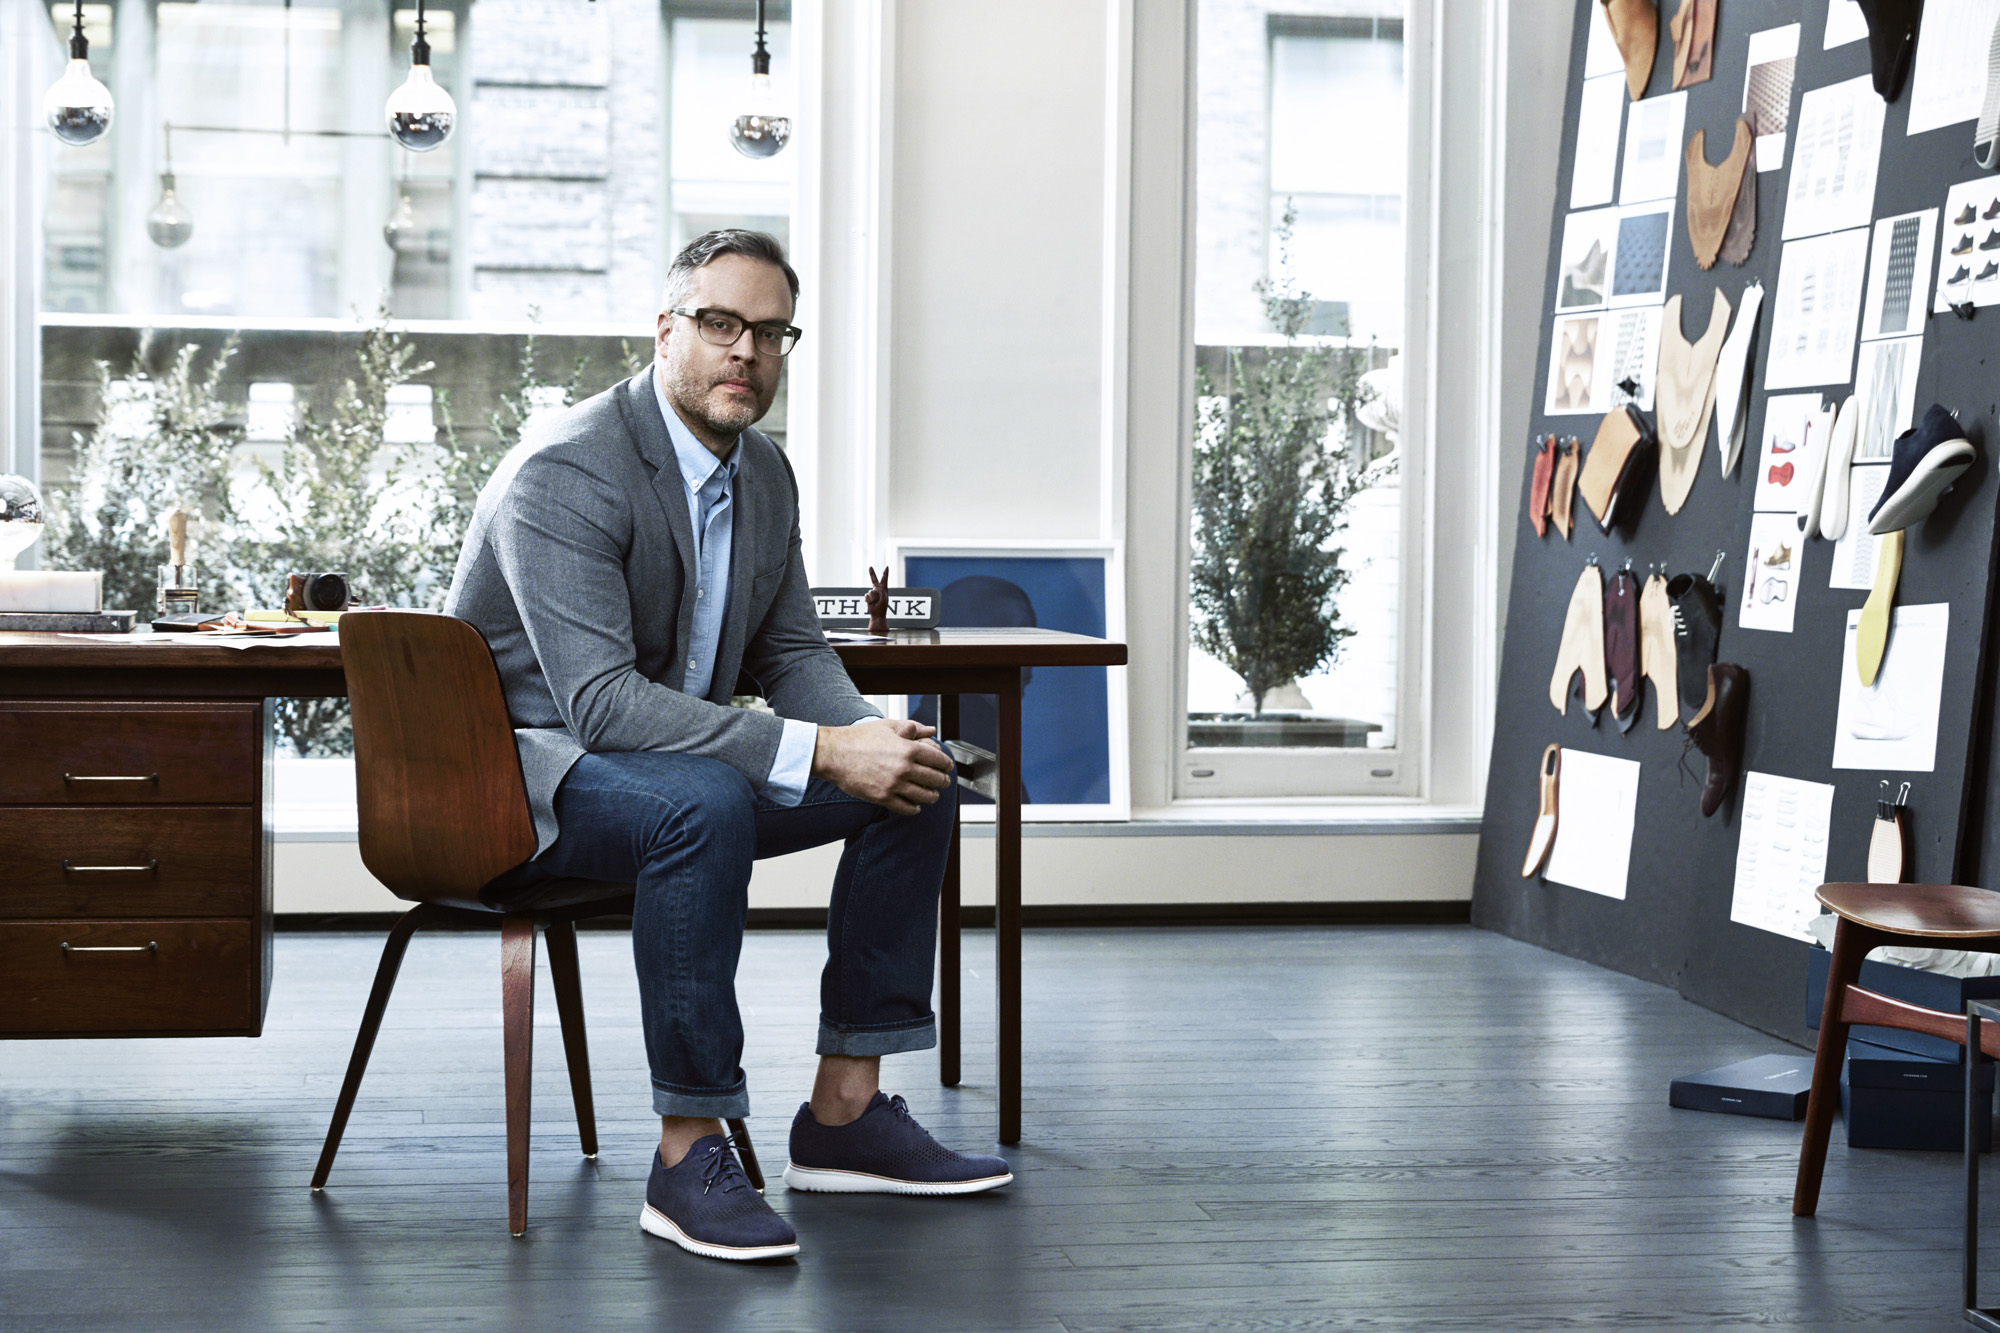 Cole Haan Fall 2016 – 2.ZERØGRAND Feel the Future Campaign™ – Scott Patt (Cole Haan)